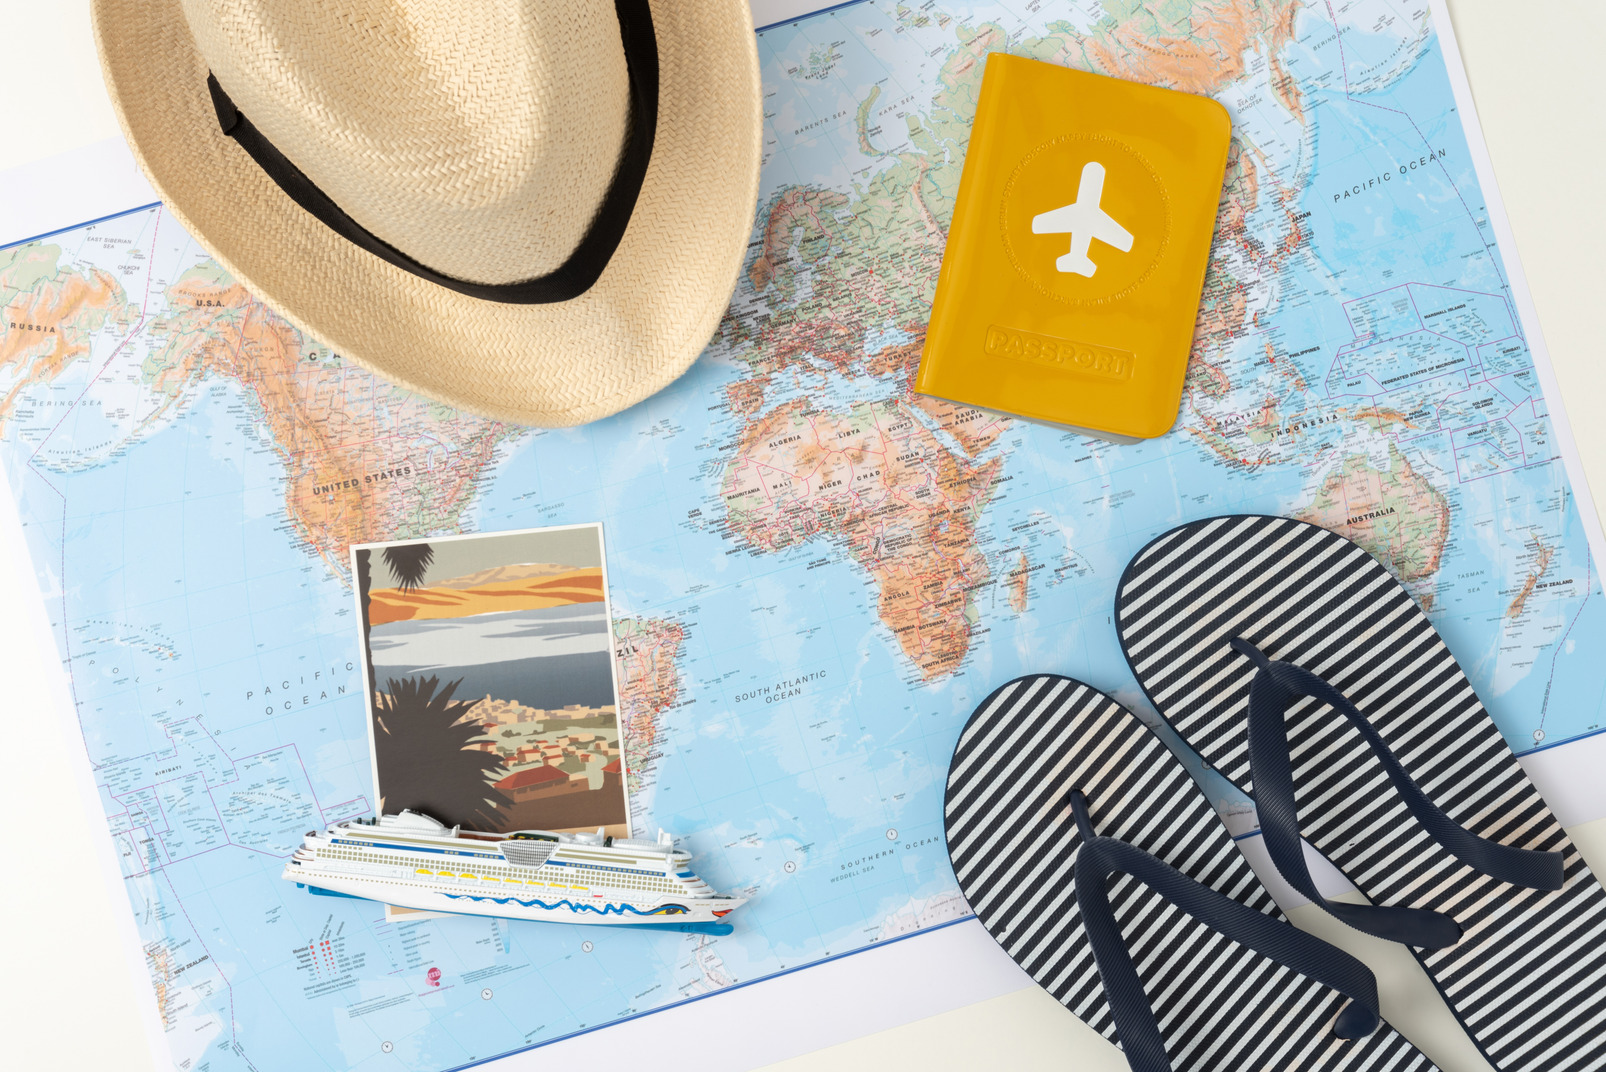 A straw hat and flip-flops, along with a passport and a picture of a nice place with palm trees and mountains, lying on the world map on my work desk as a subtle indicator of my desire to get a vacation